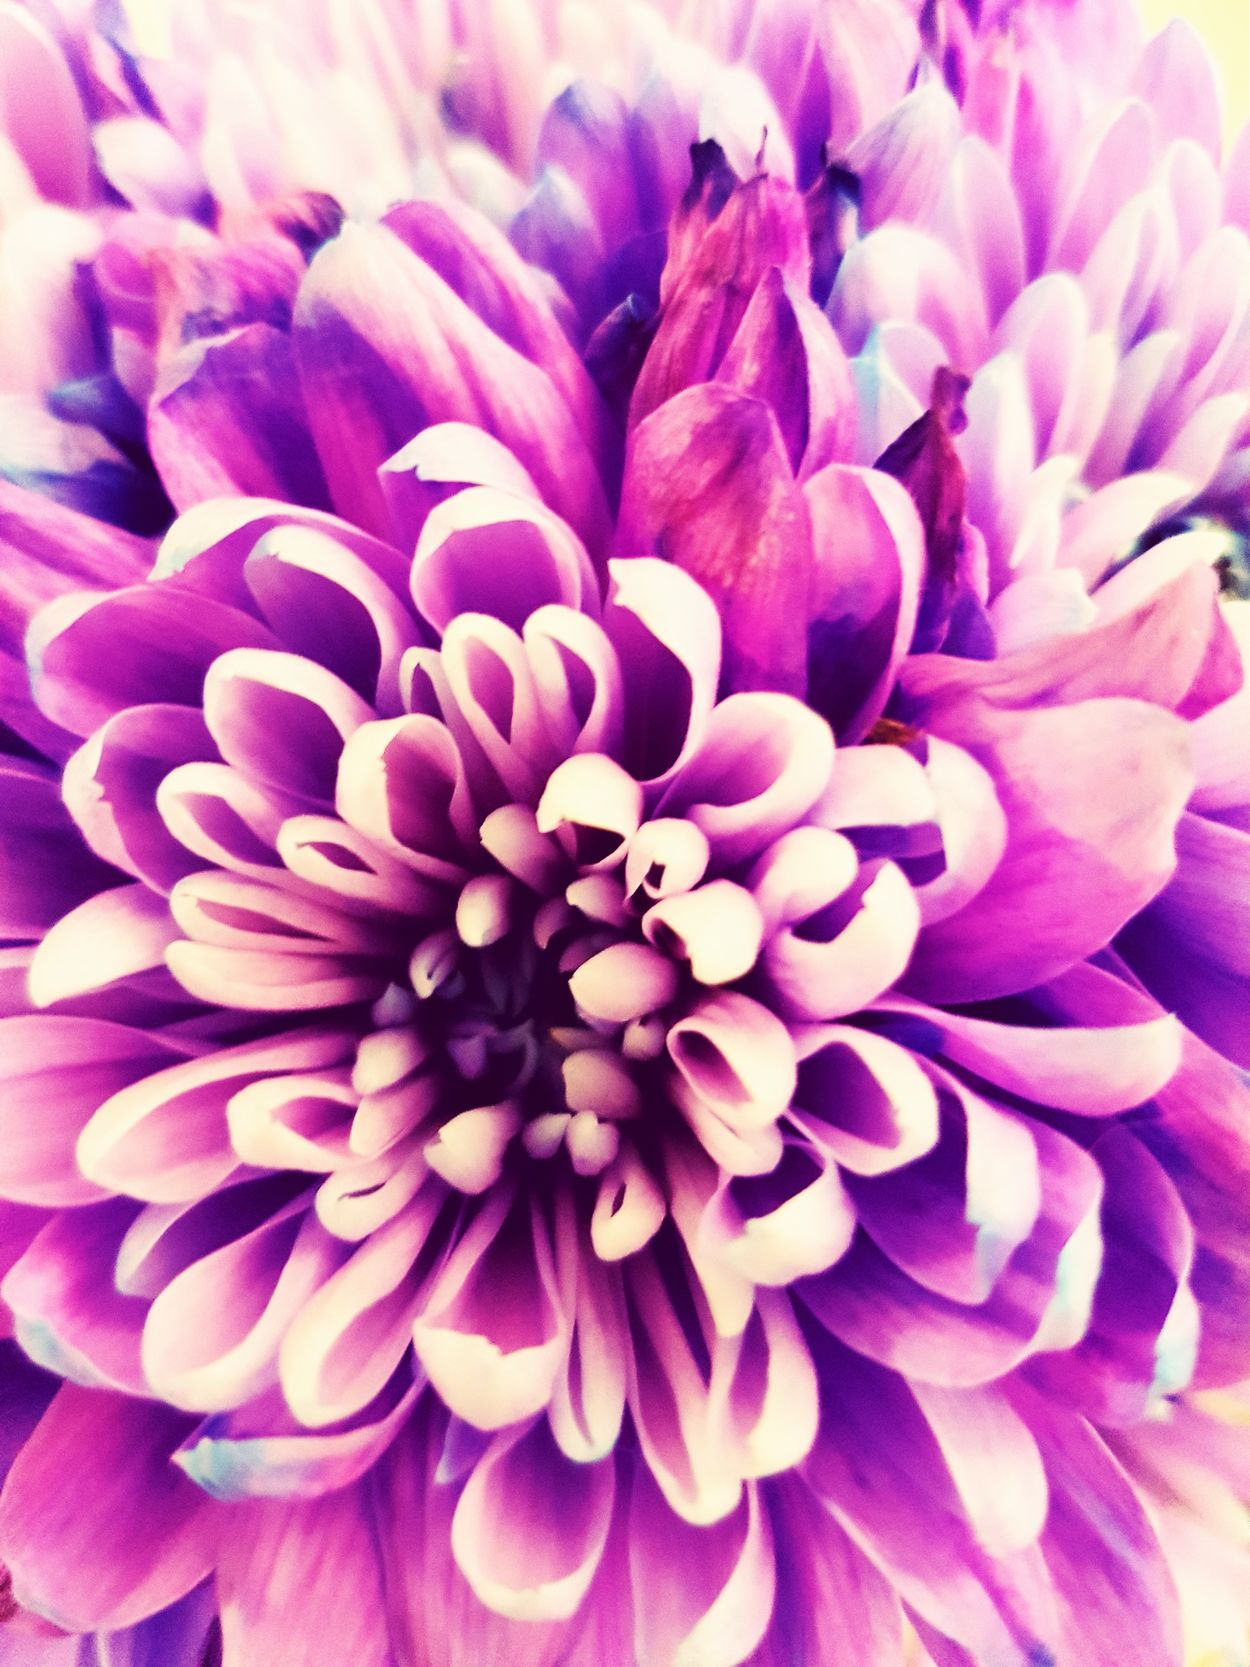 Flower Fragility Petal Beauty In Nature Full Frame Close-up Flower Head Freshness Nature Backgrounds No People Outdoors Day Chrysanthemum Purple Purple Flower Pink-purple Flowering Branches Petals Purple Petals Nature